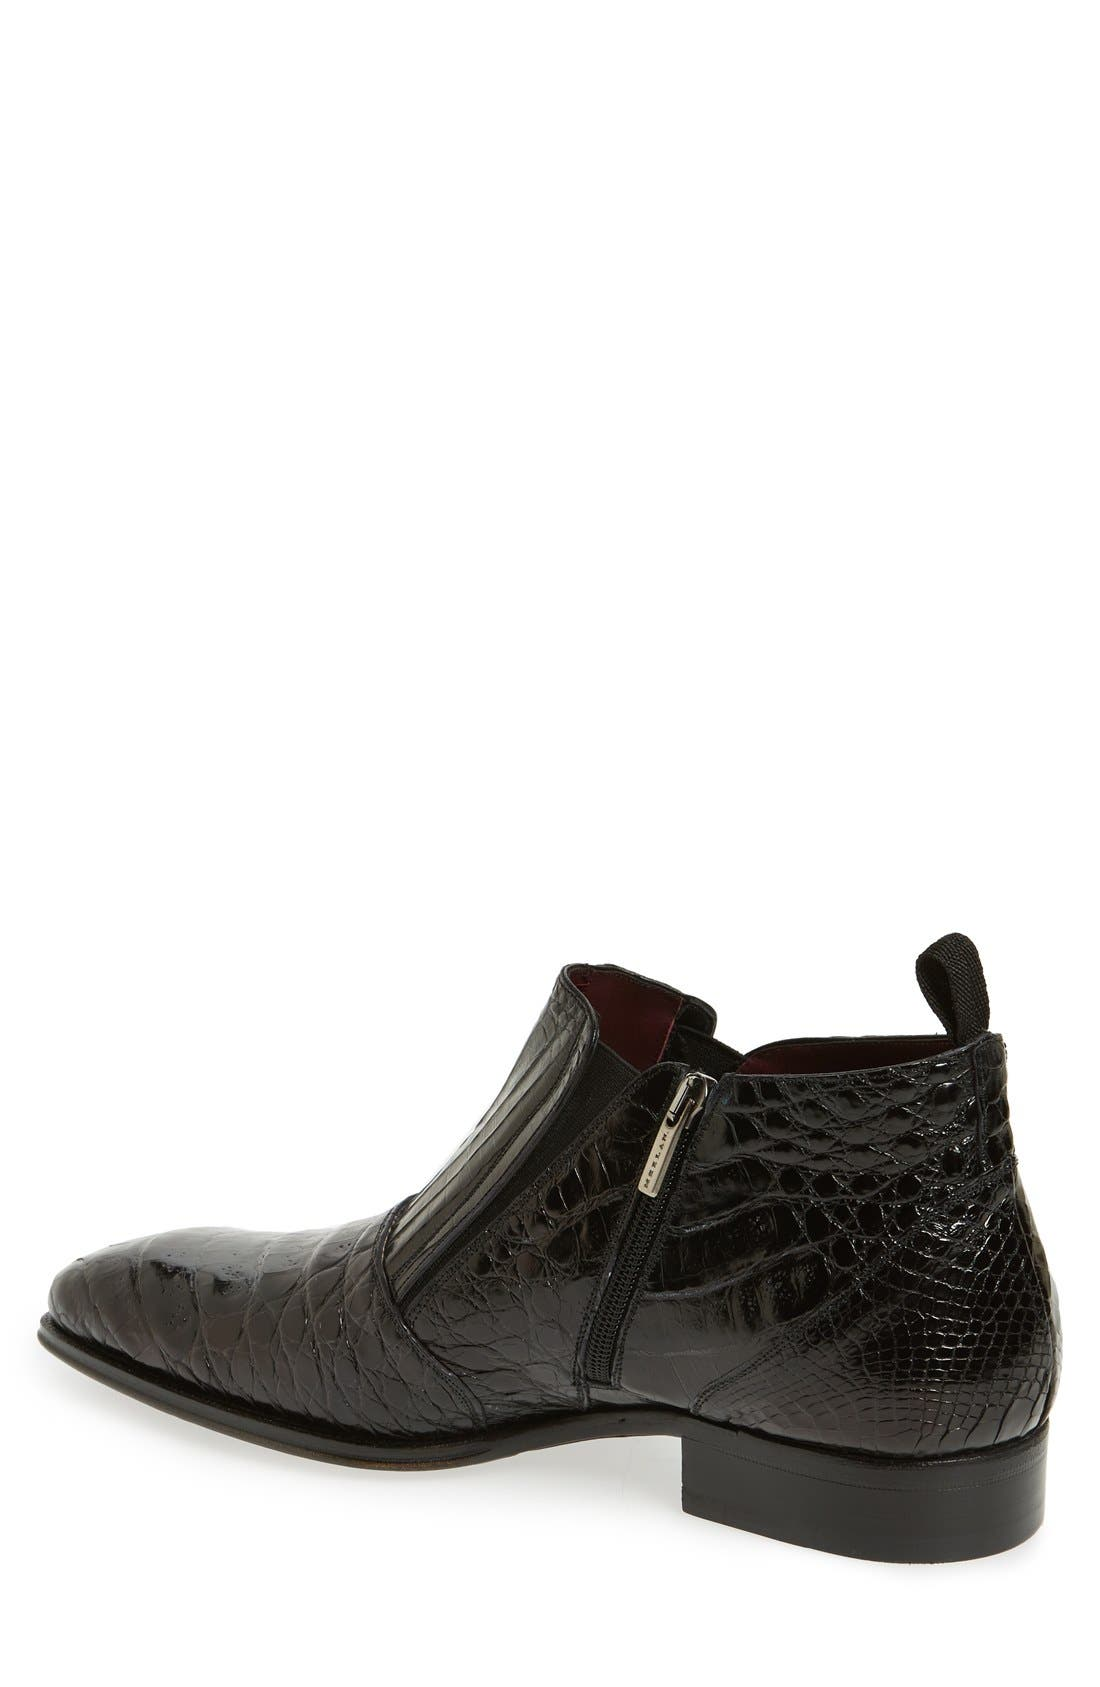 'Bene' Chelsea Boot,                             Alternate thumbnail 2, color,                             Black